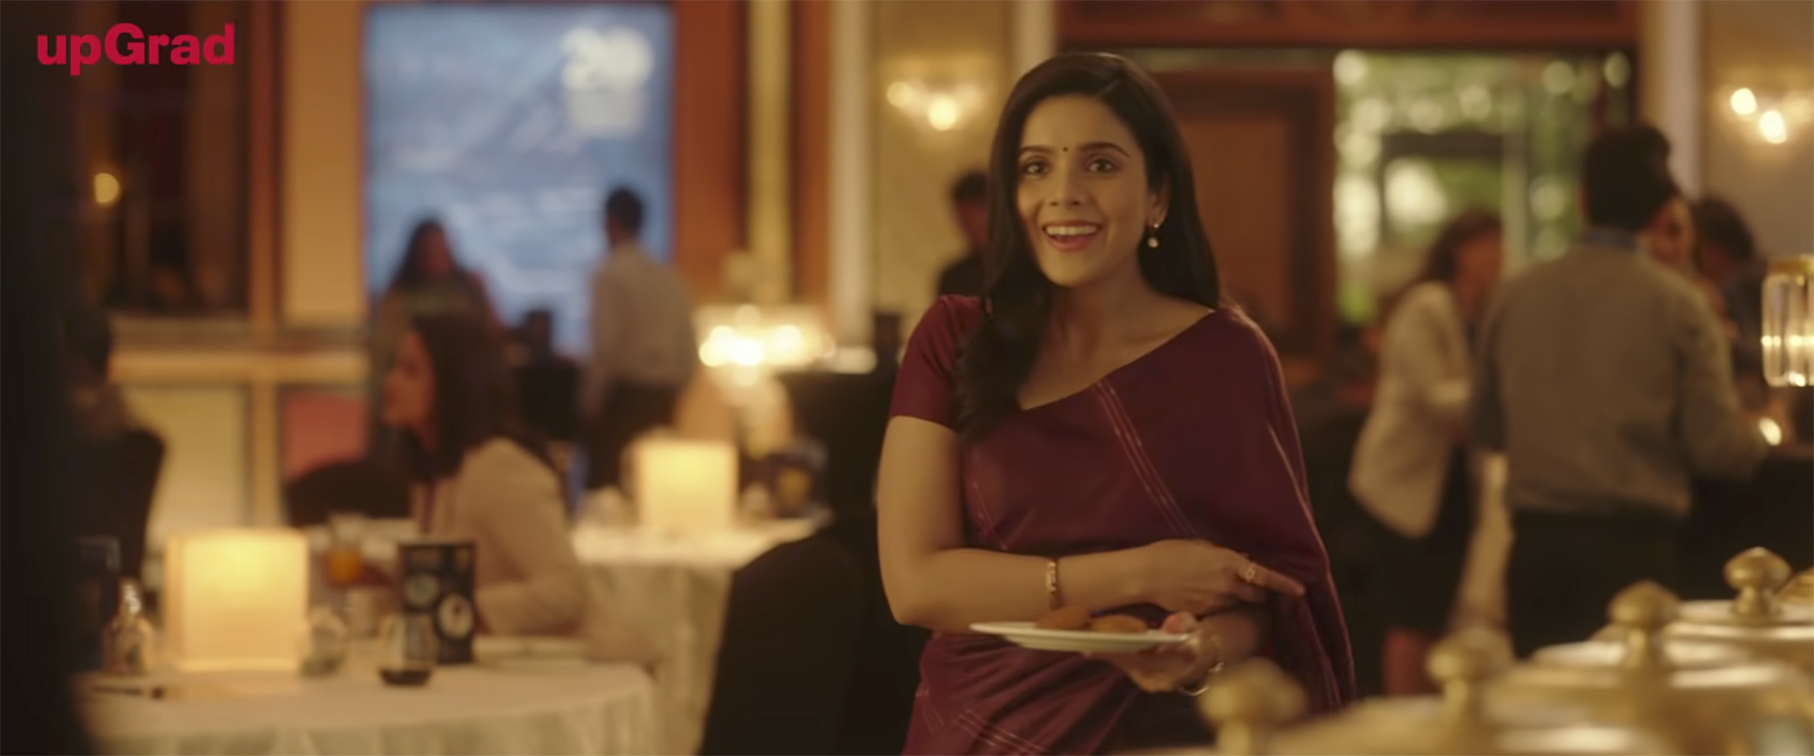 upGrad's latest campaign via The Womb India commits to fast-forwarding your career